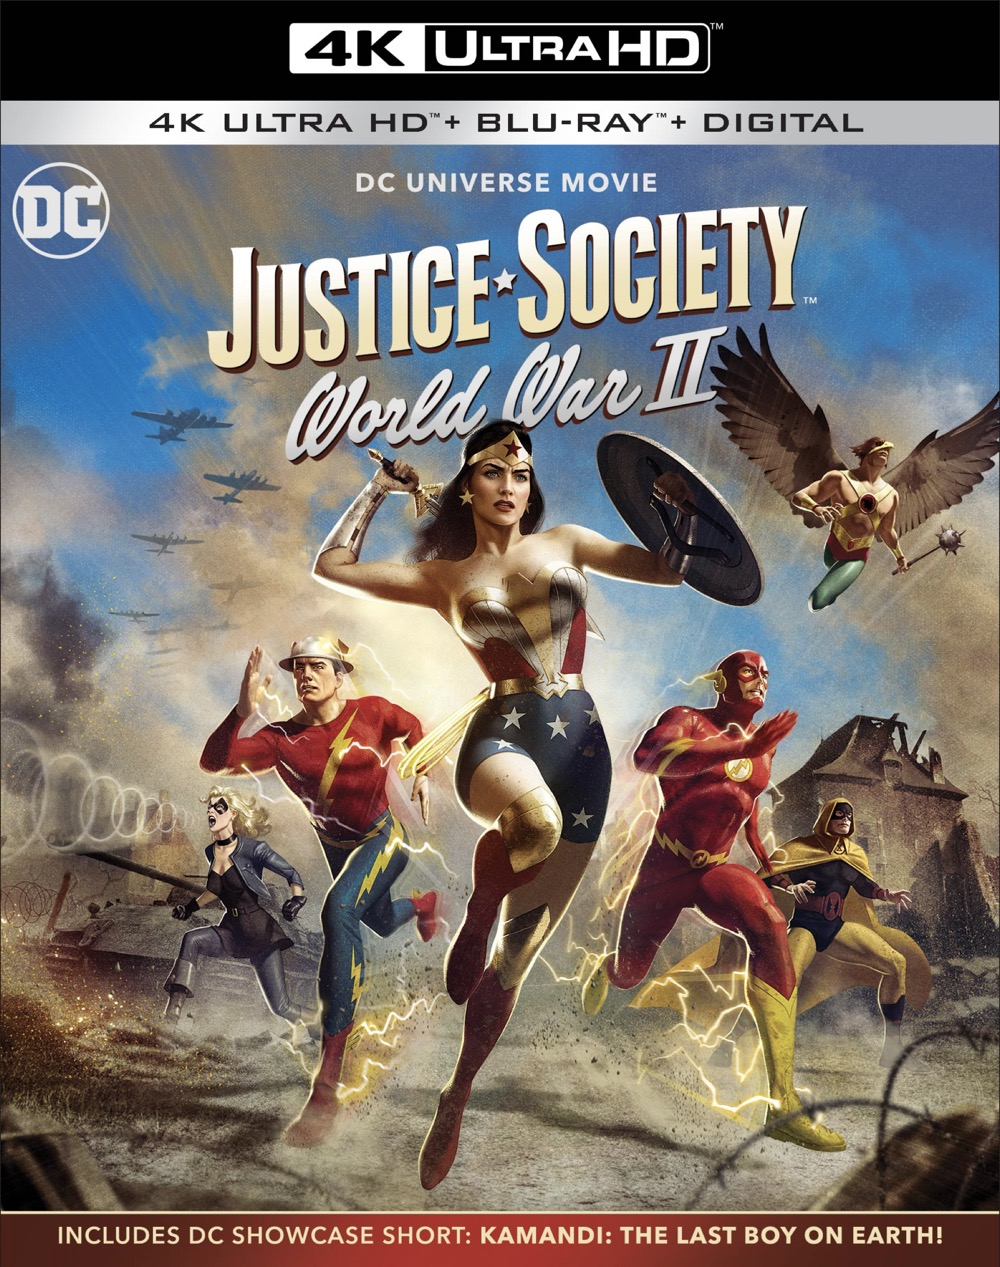 JusticeSociety WWII 1000783440 4K OSLV 2D TEMP DOM SKEW